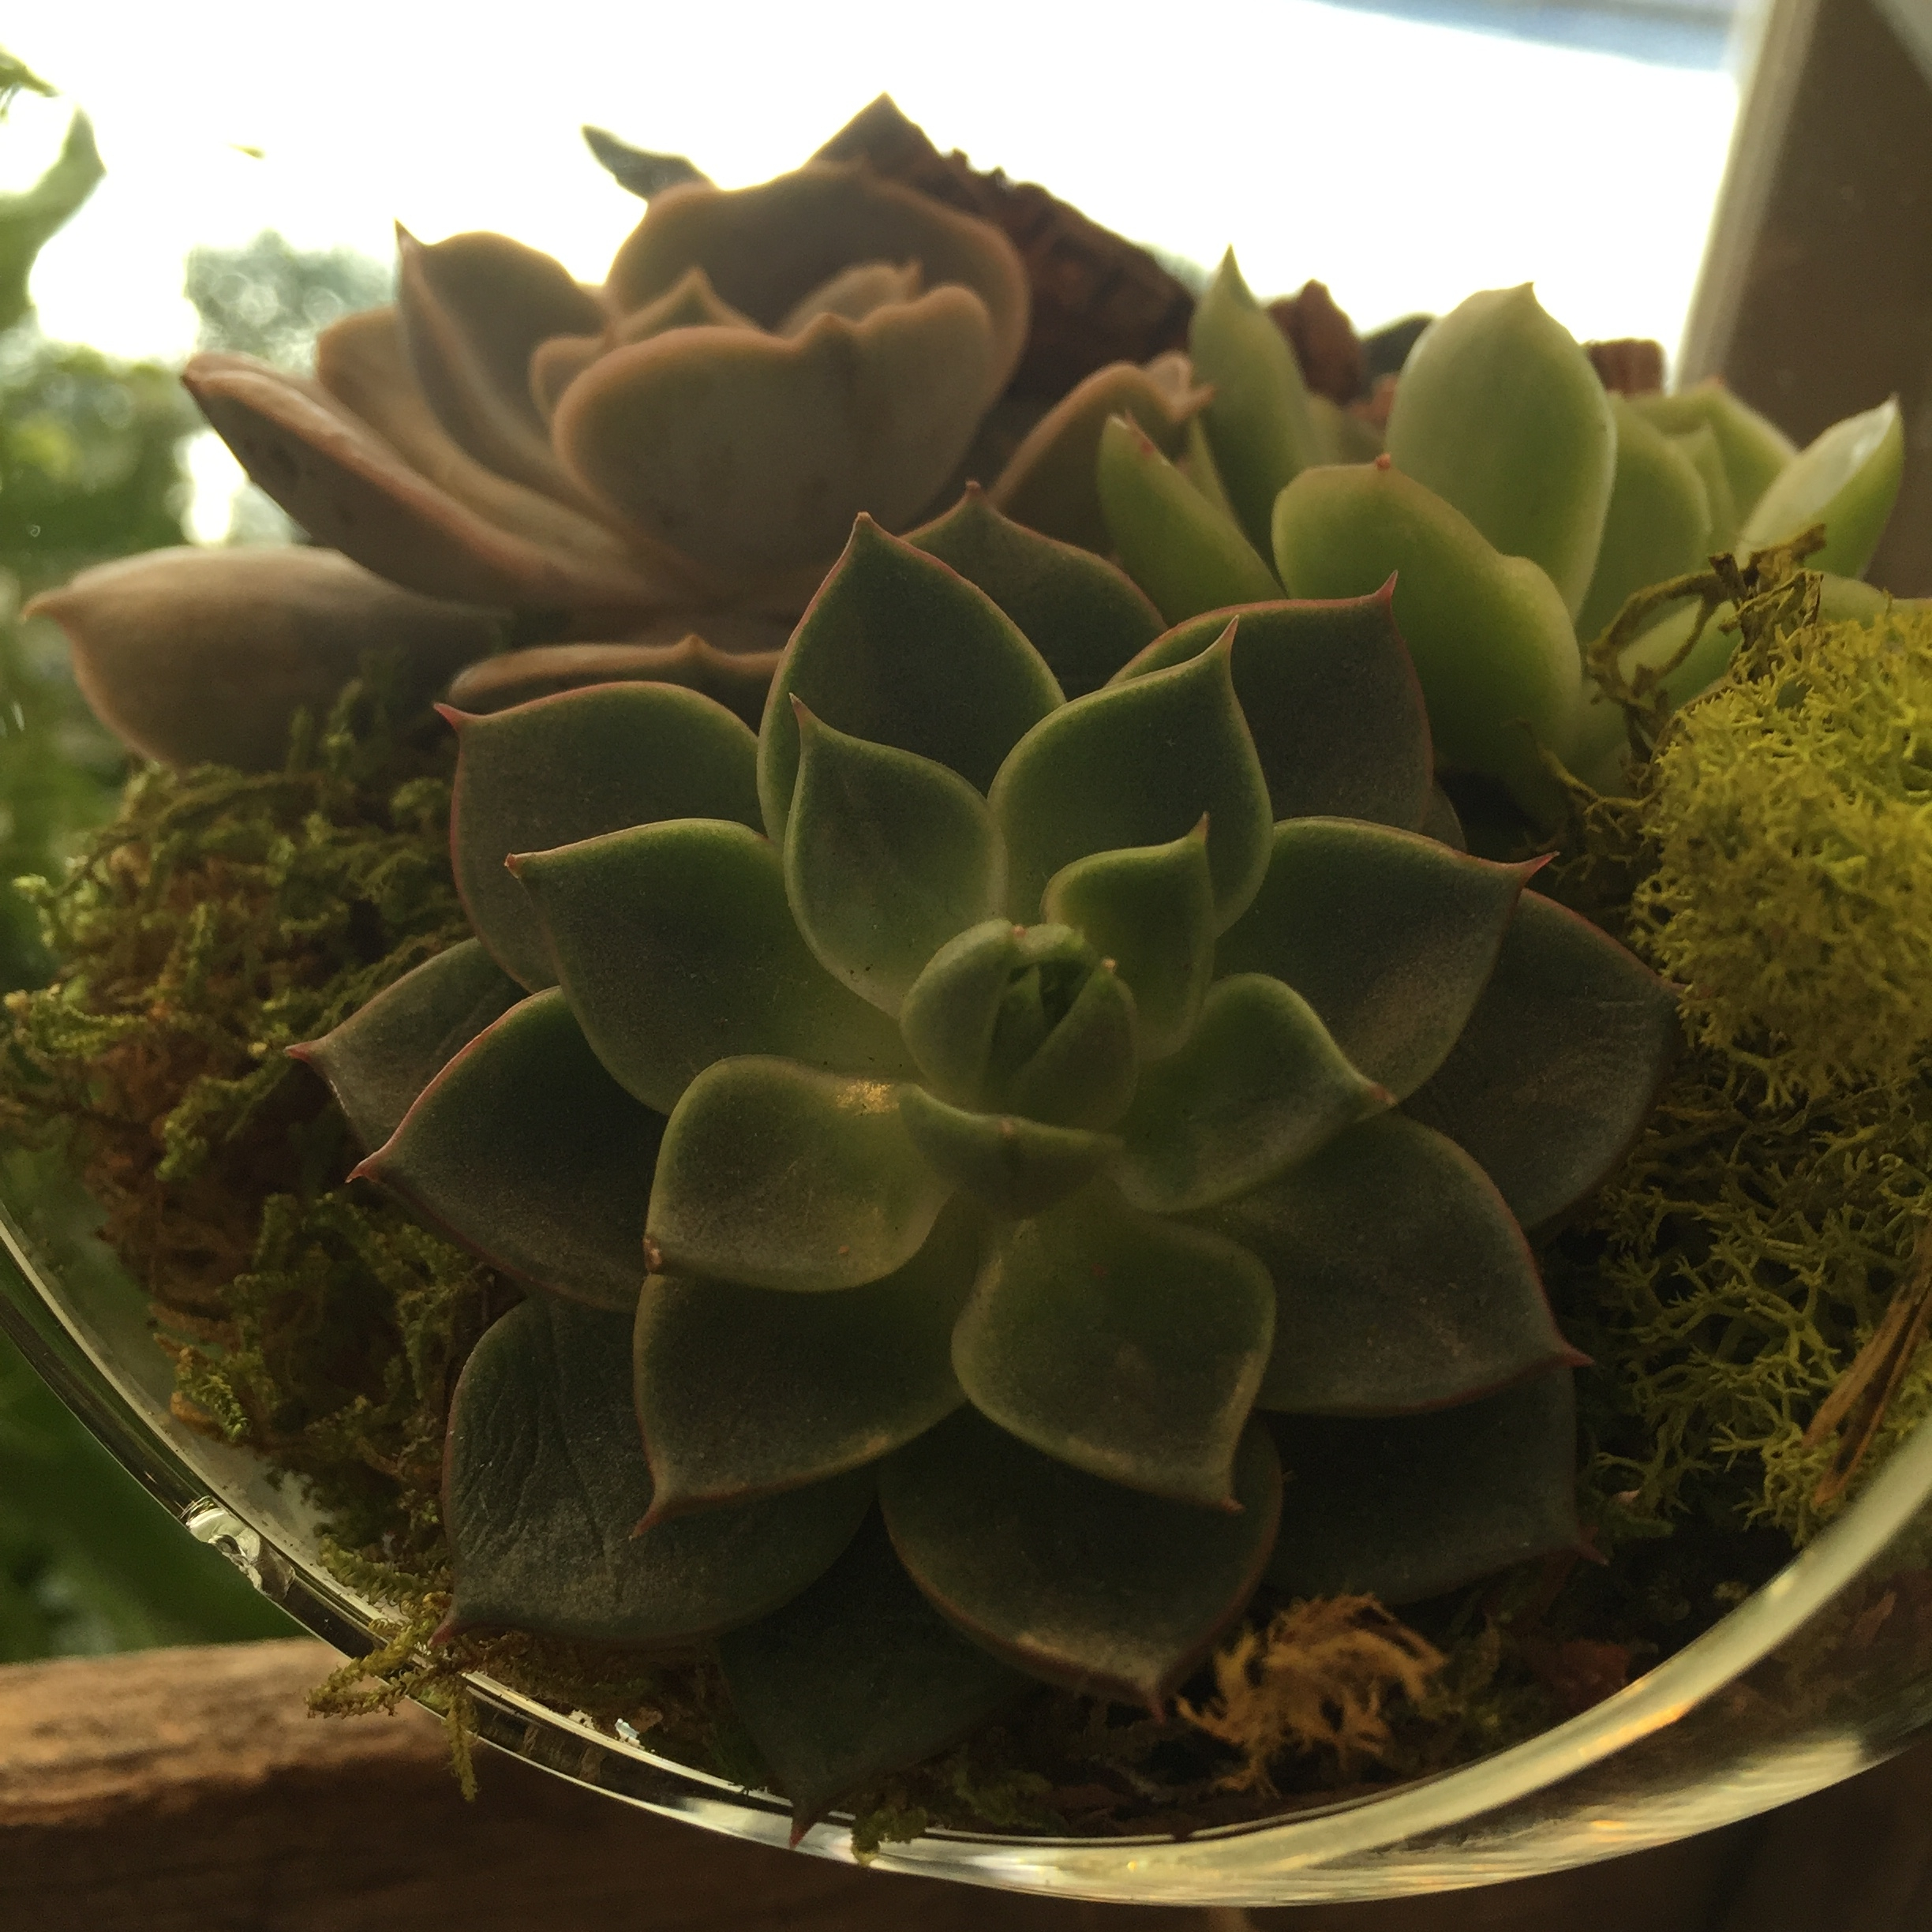 Echeveria are great additions to terrariums because they do not require frequent waterings, nor do they need a lot of space to grow.We enjoy the look of groupings of these little succulents- but they also look stunning on their own.